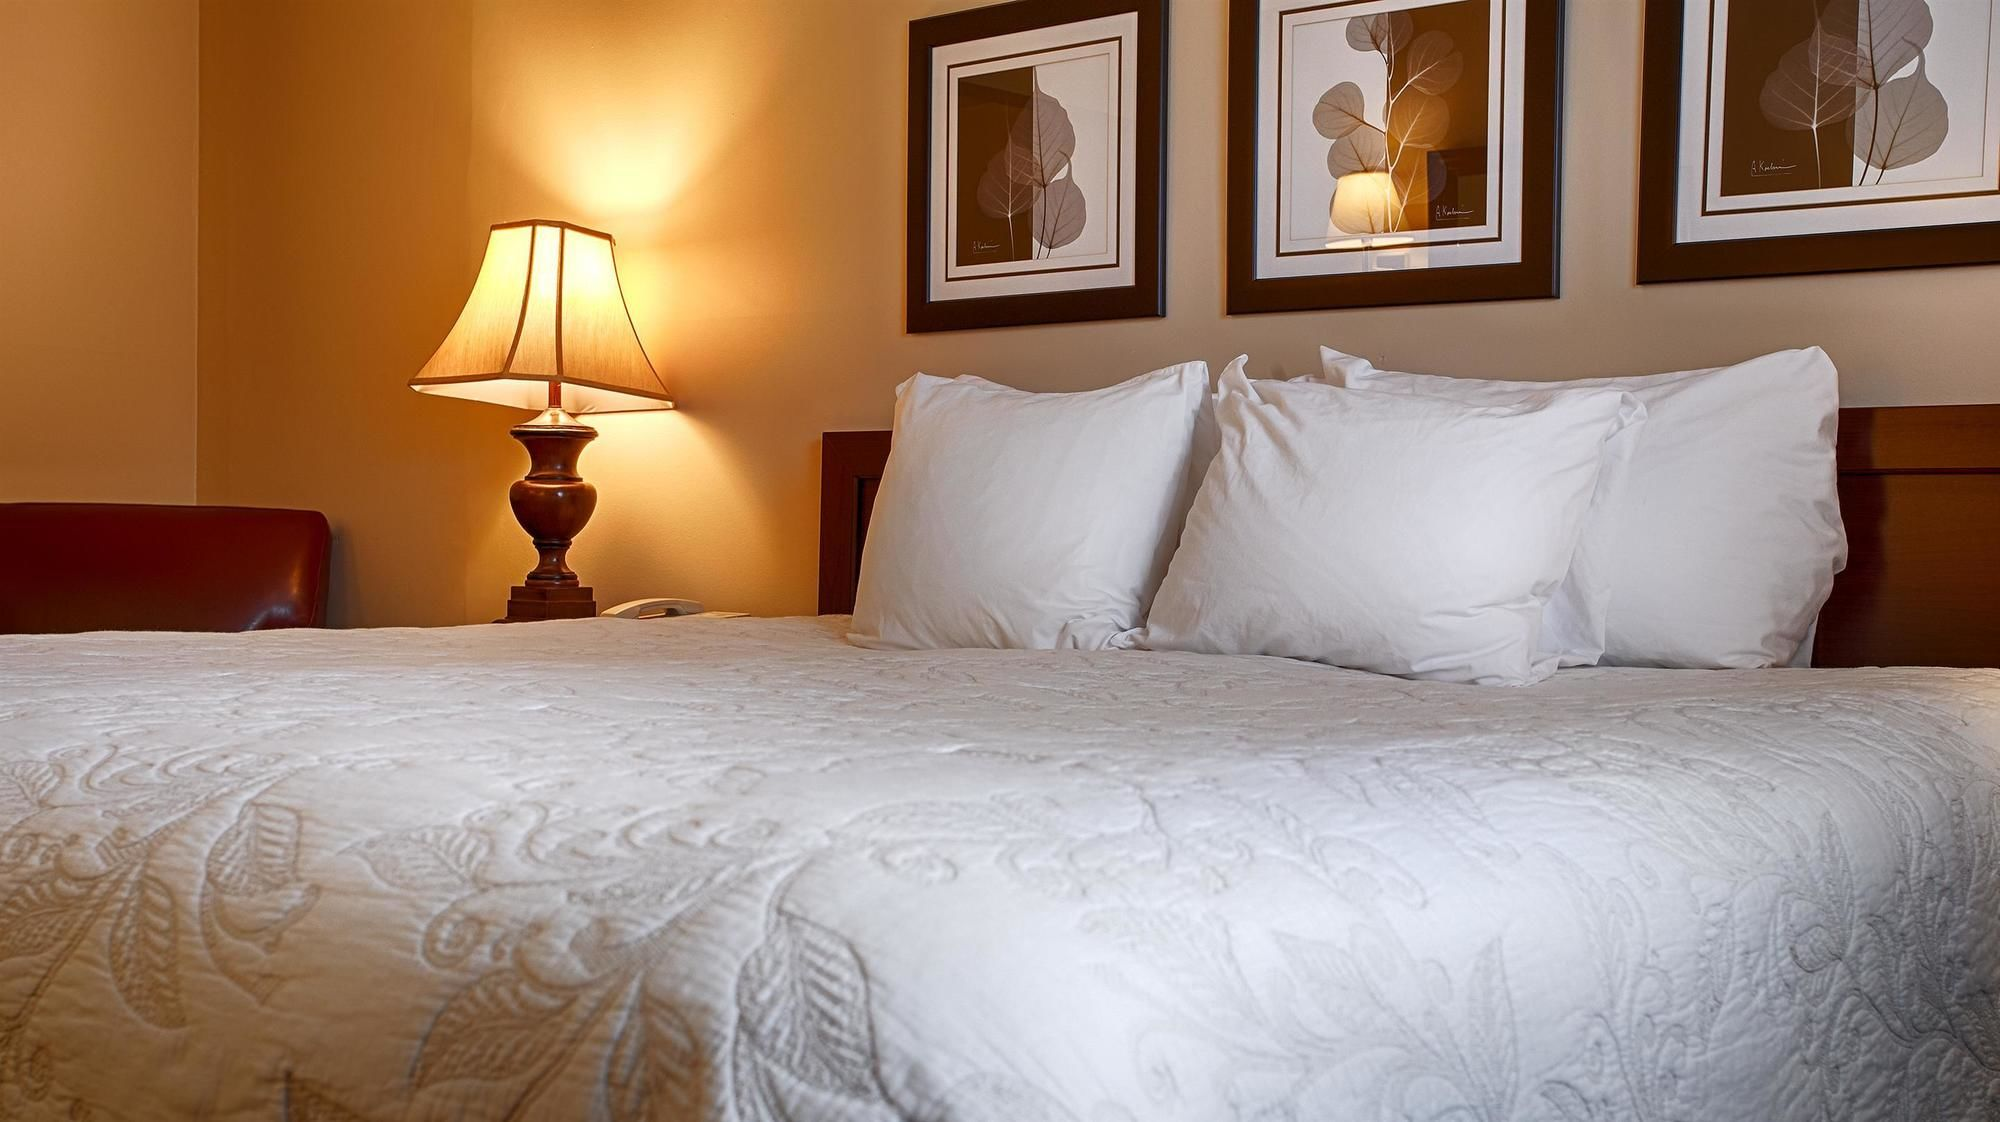 Discount Coupon for Best Western Silver Fox Inn in Waterville Valley, New Hampshire - Save Money!